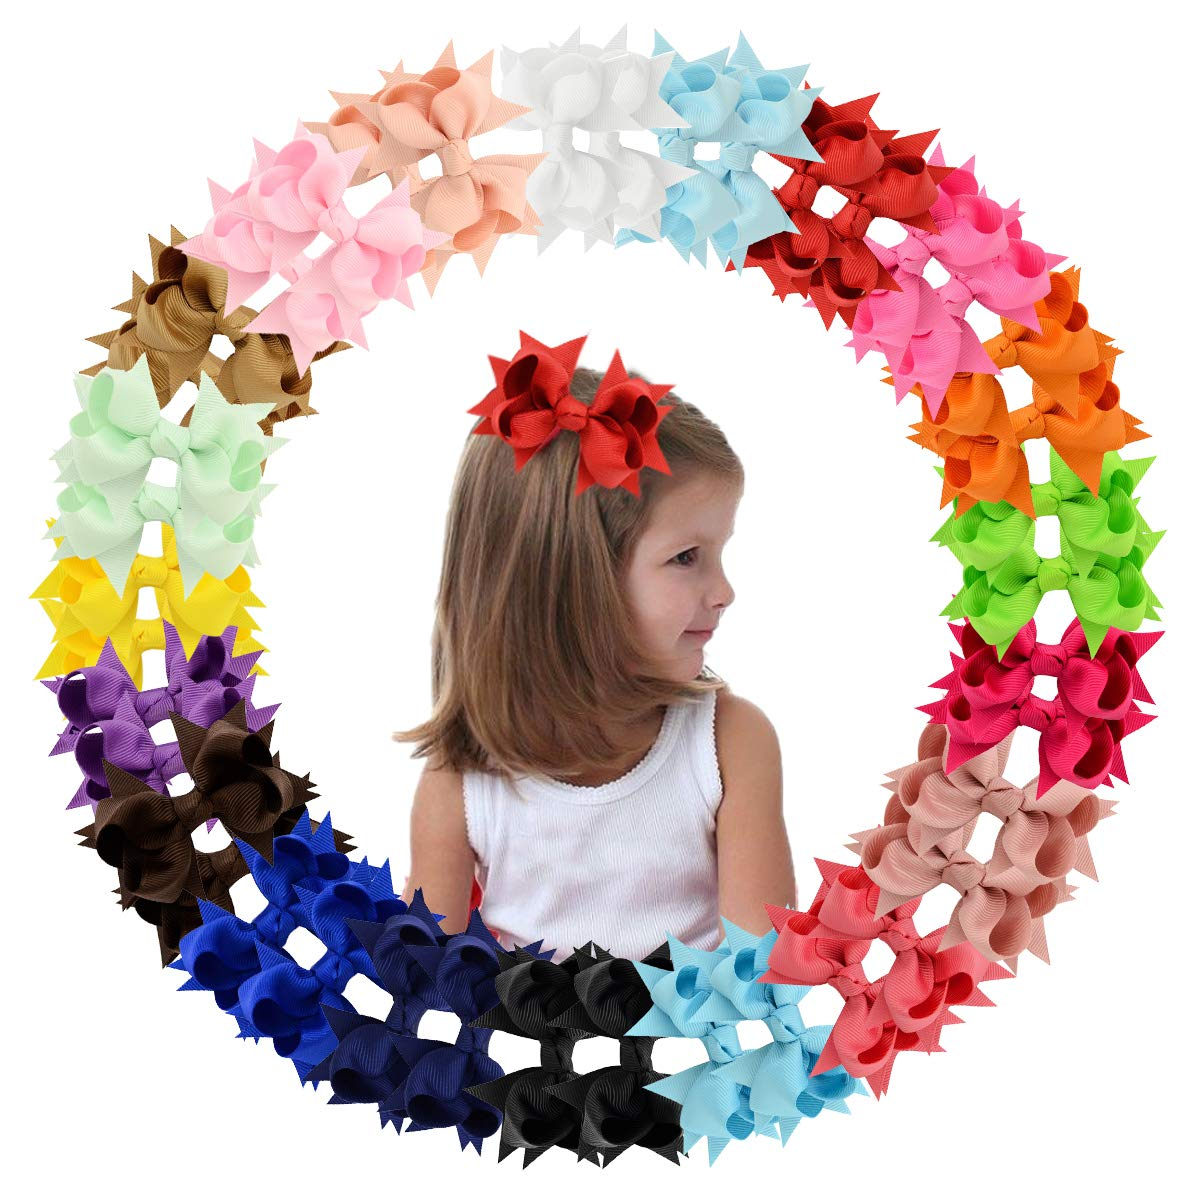 40PCS/20 Colors Baby Girls Hair Bows Alligator Hair Clips 3.3Inch Grosgrain Ribbon Pinwheel Bows Hair Barrettes Hair Accessories for Babies Infant Toddlers Kids Toddler Children